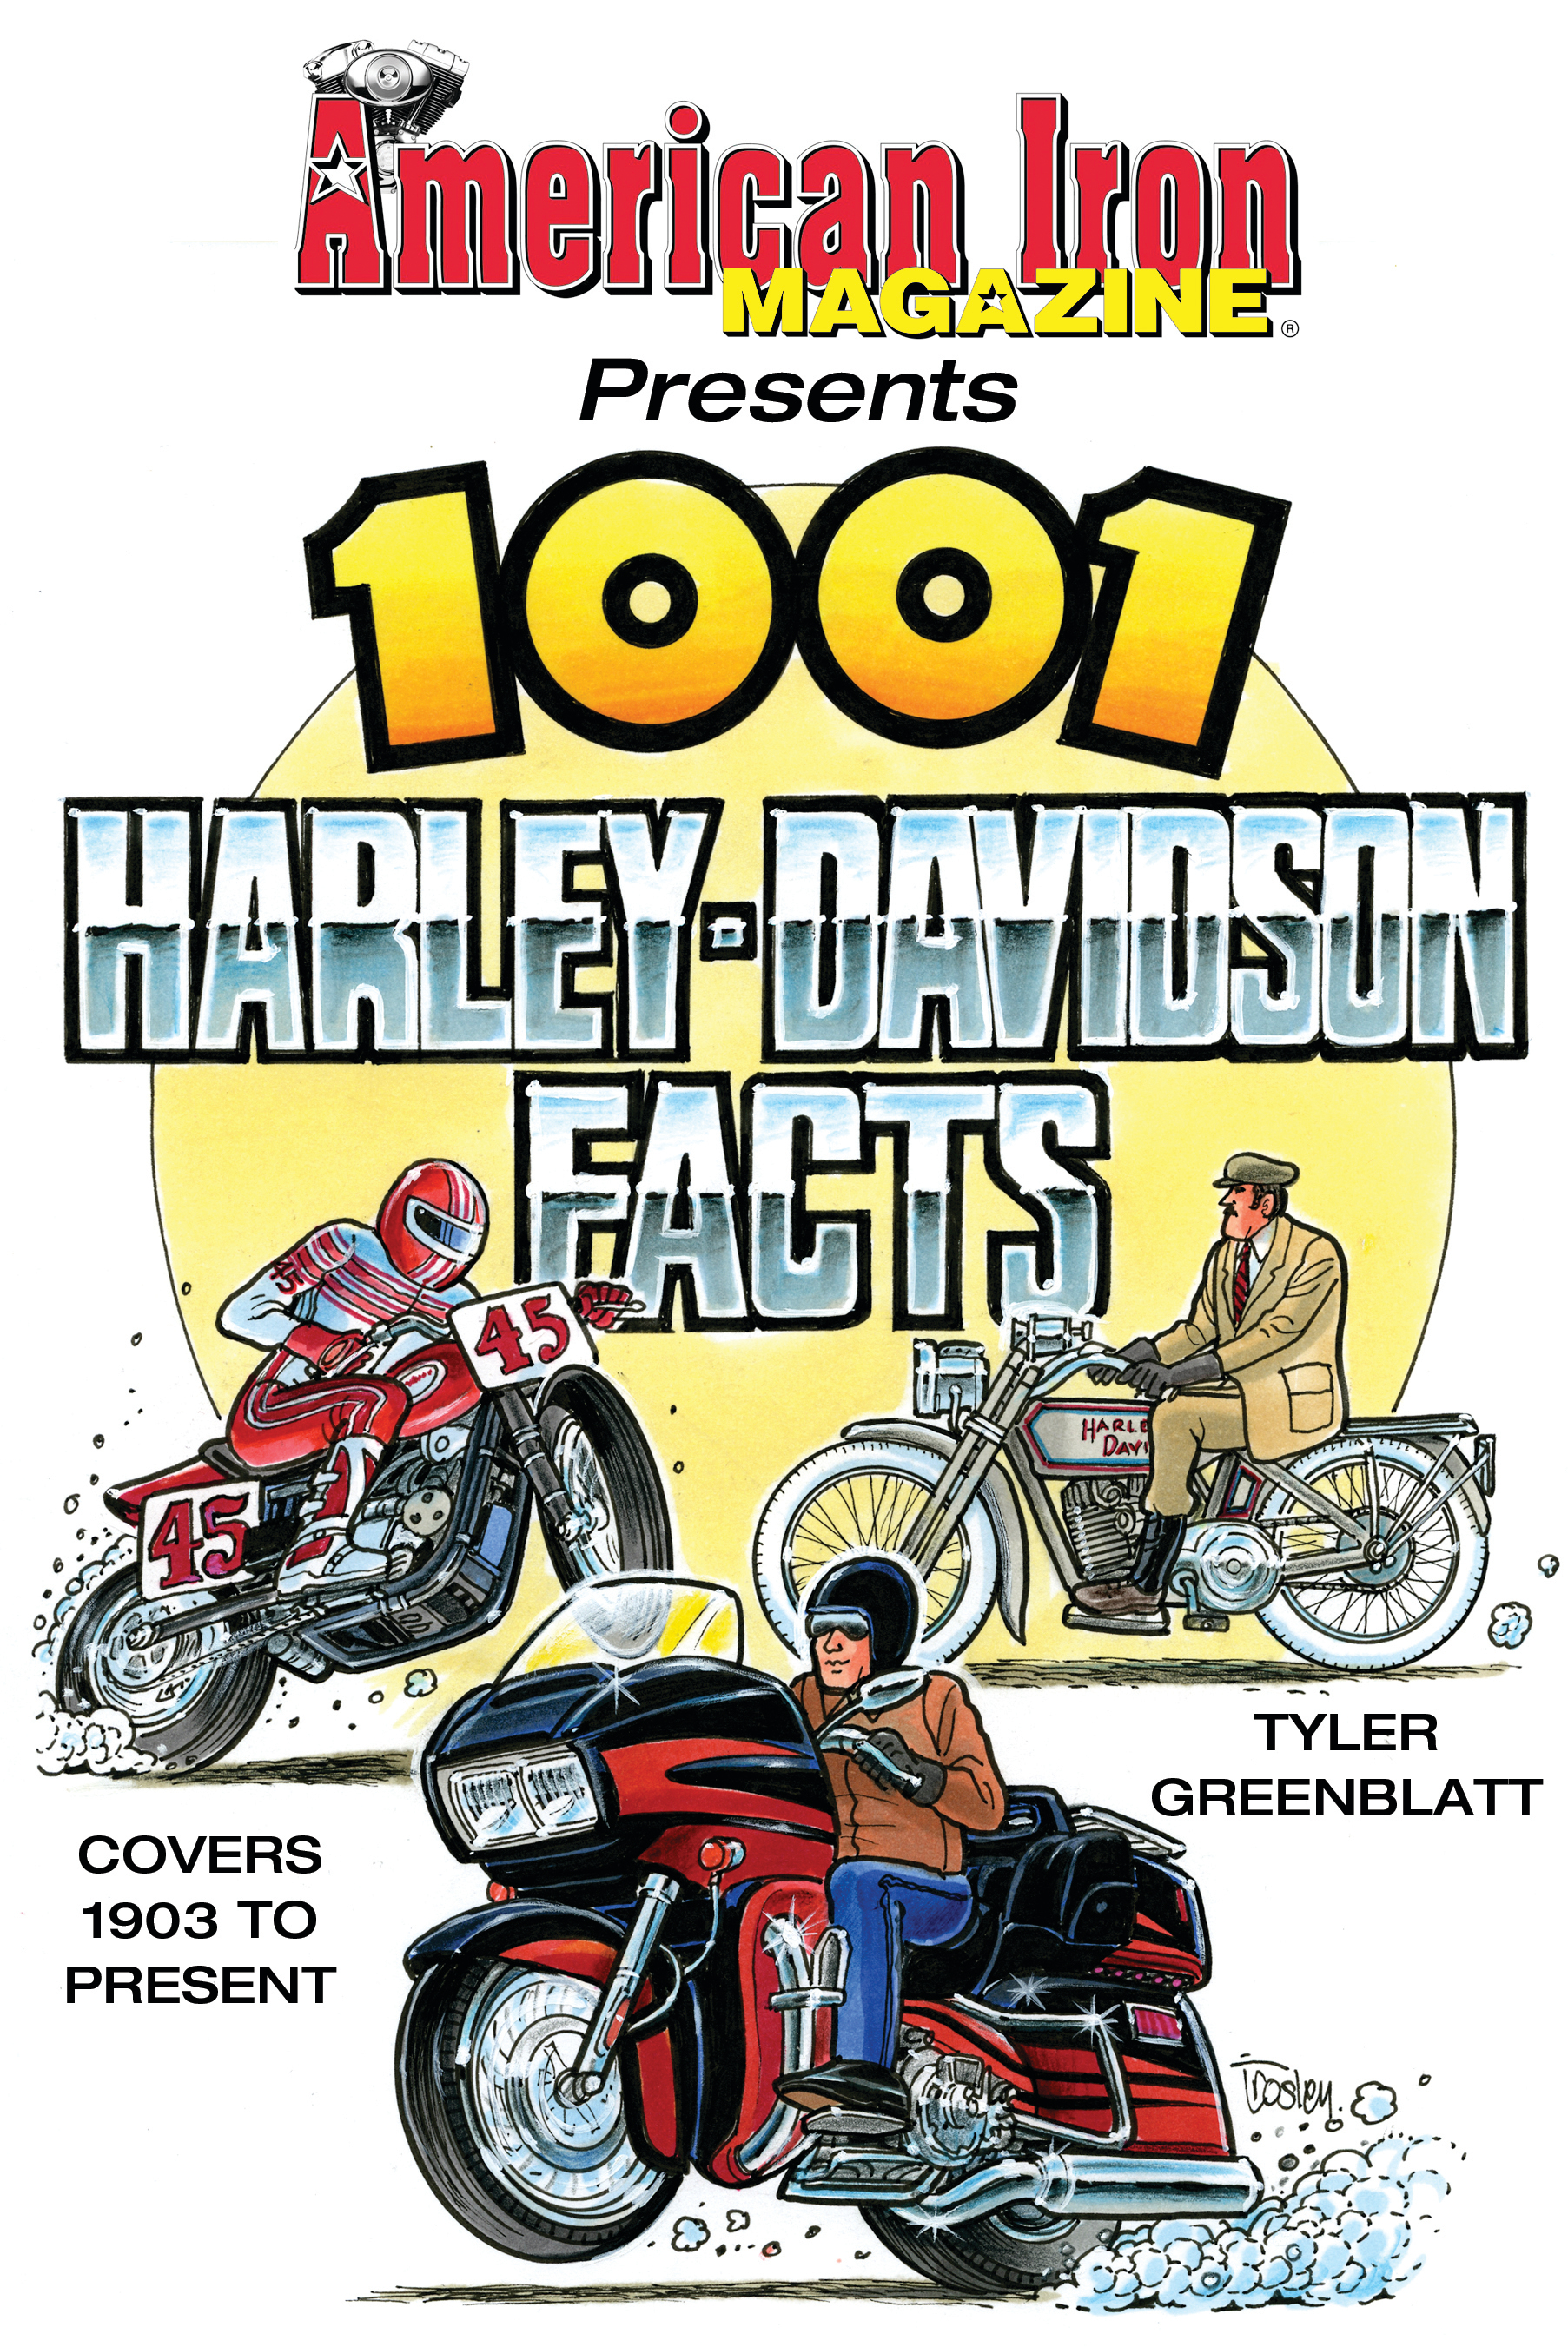 S-A Books CT575 Book, 1001 Harley-Davidson Facts, 352 Pages, Paperback, Each